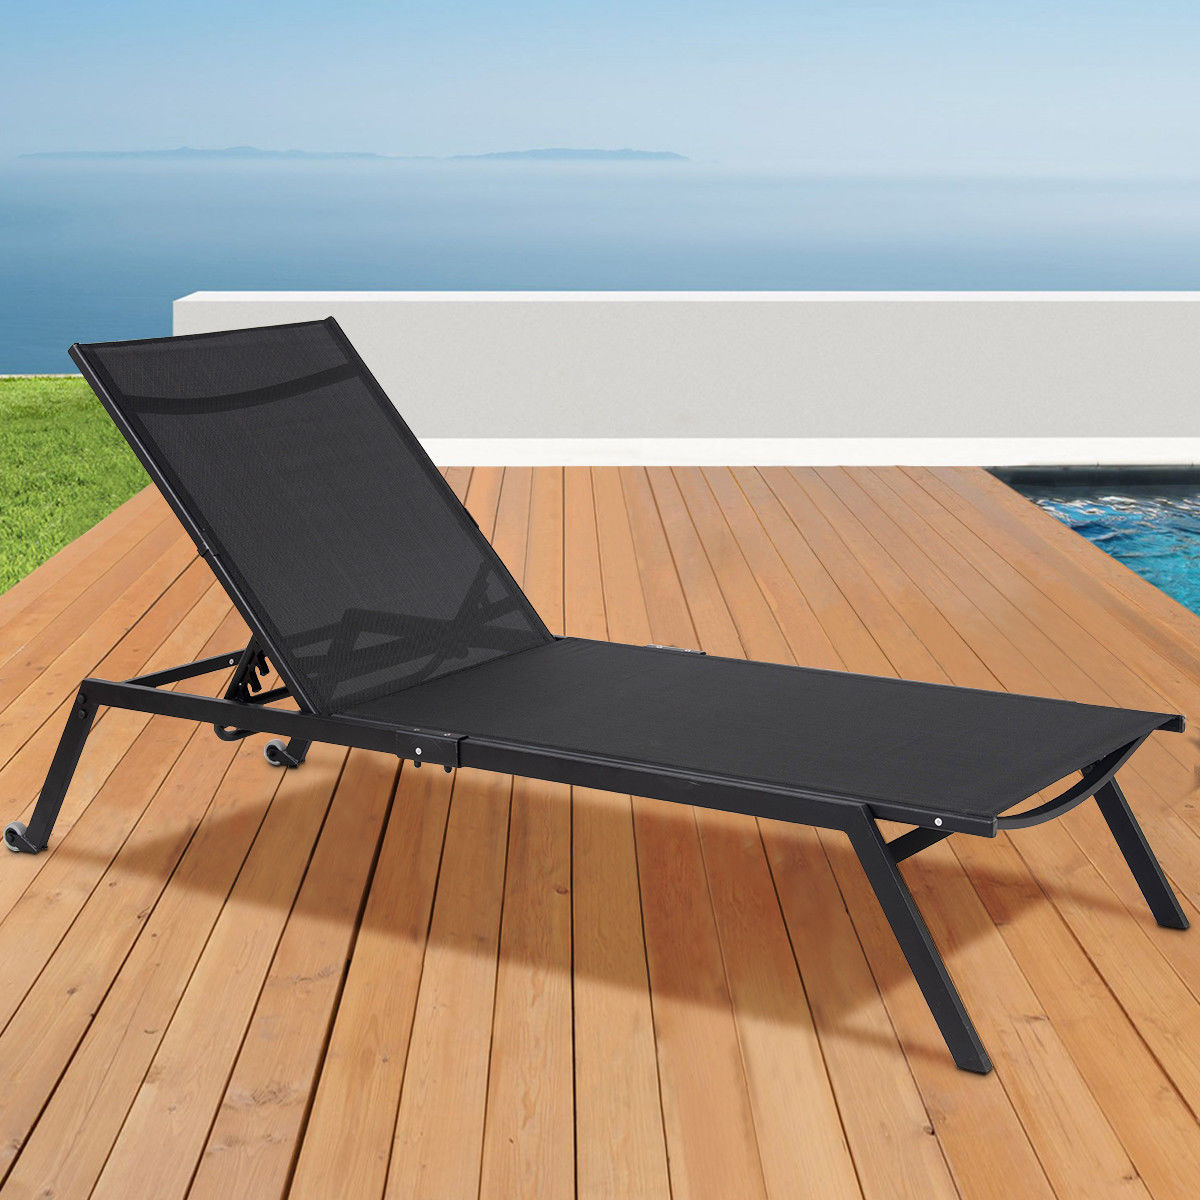 Costway Outdoor Patio Chaise Lounge Sling Armless Chaise Height Adjustable Black